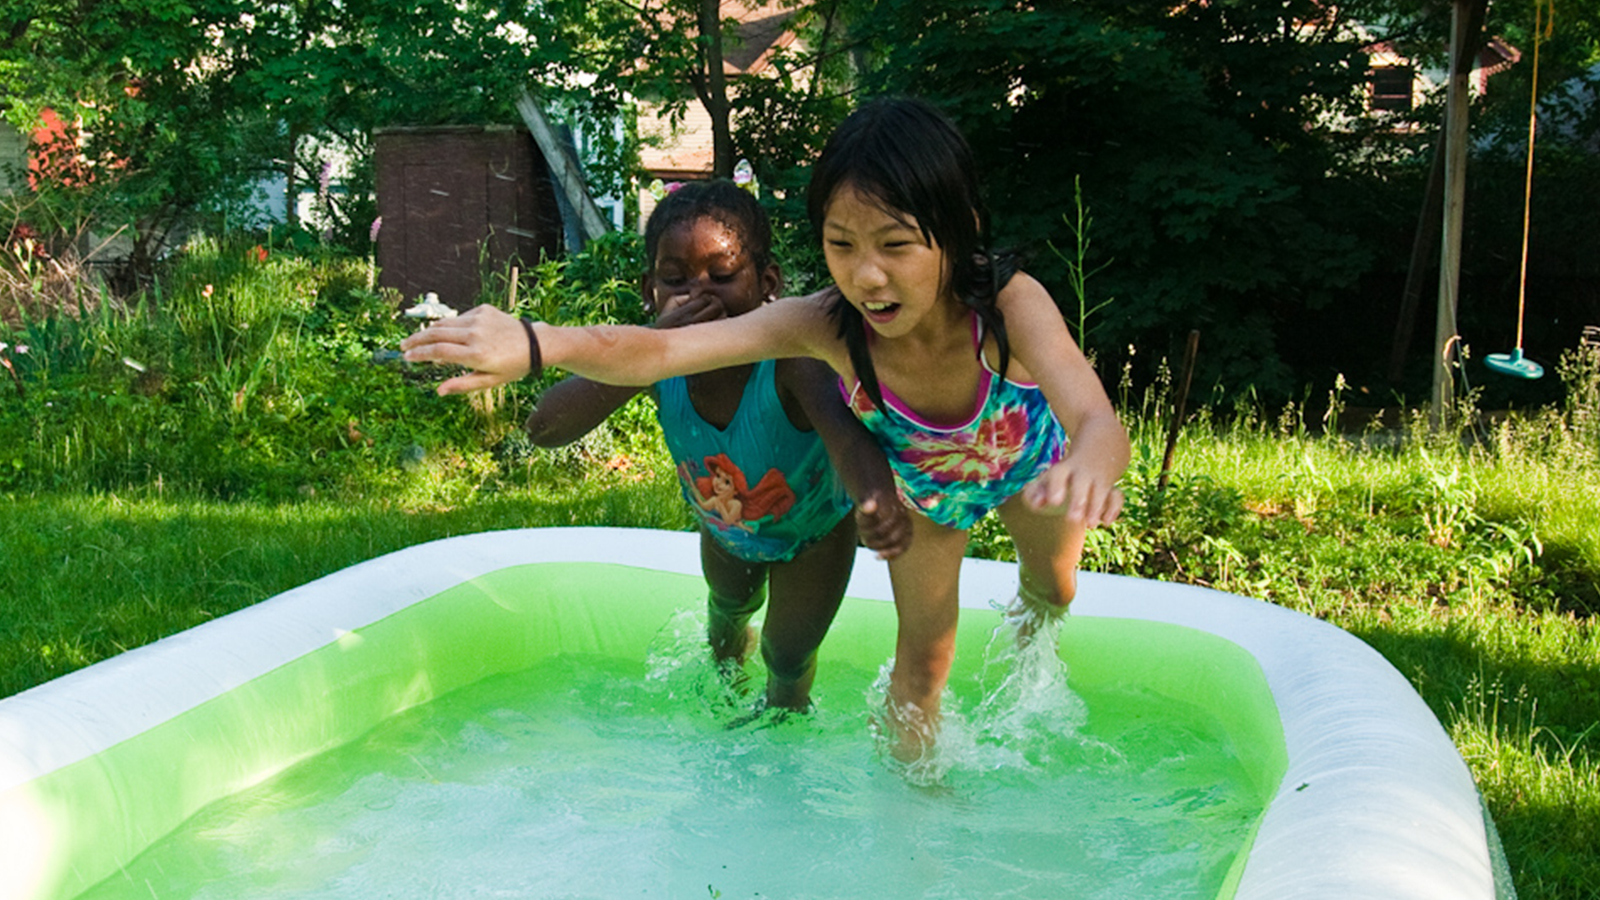 Before You Buy an Inflatable Pool, Read This!